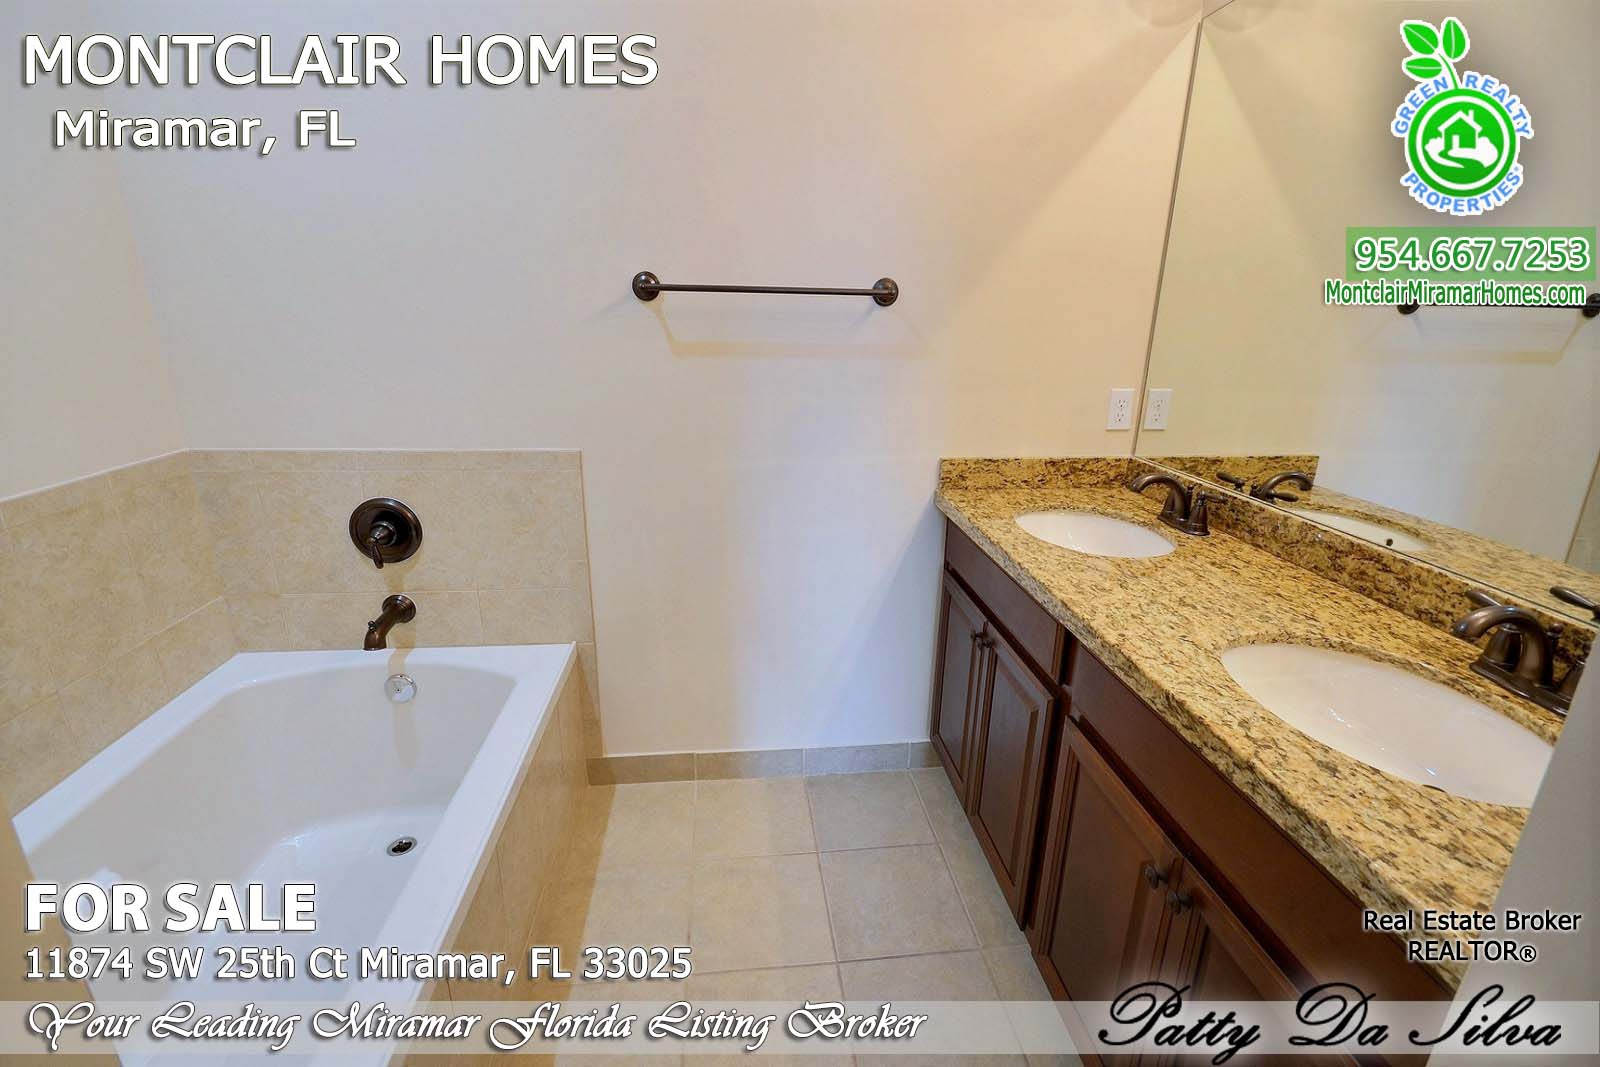 11874 SW 25 CT, Miramar FL 33025 - Montclair (20) - Copy